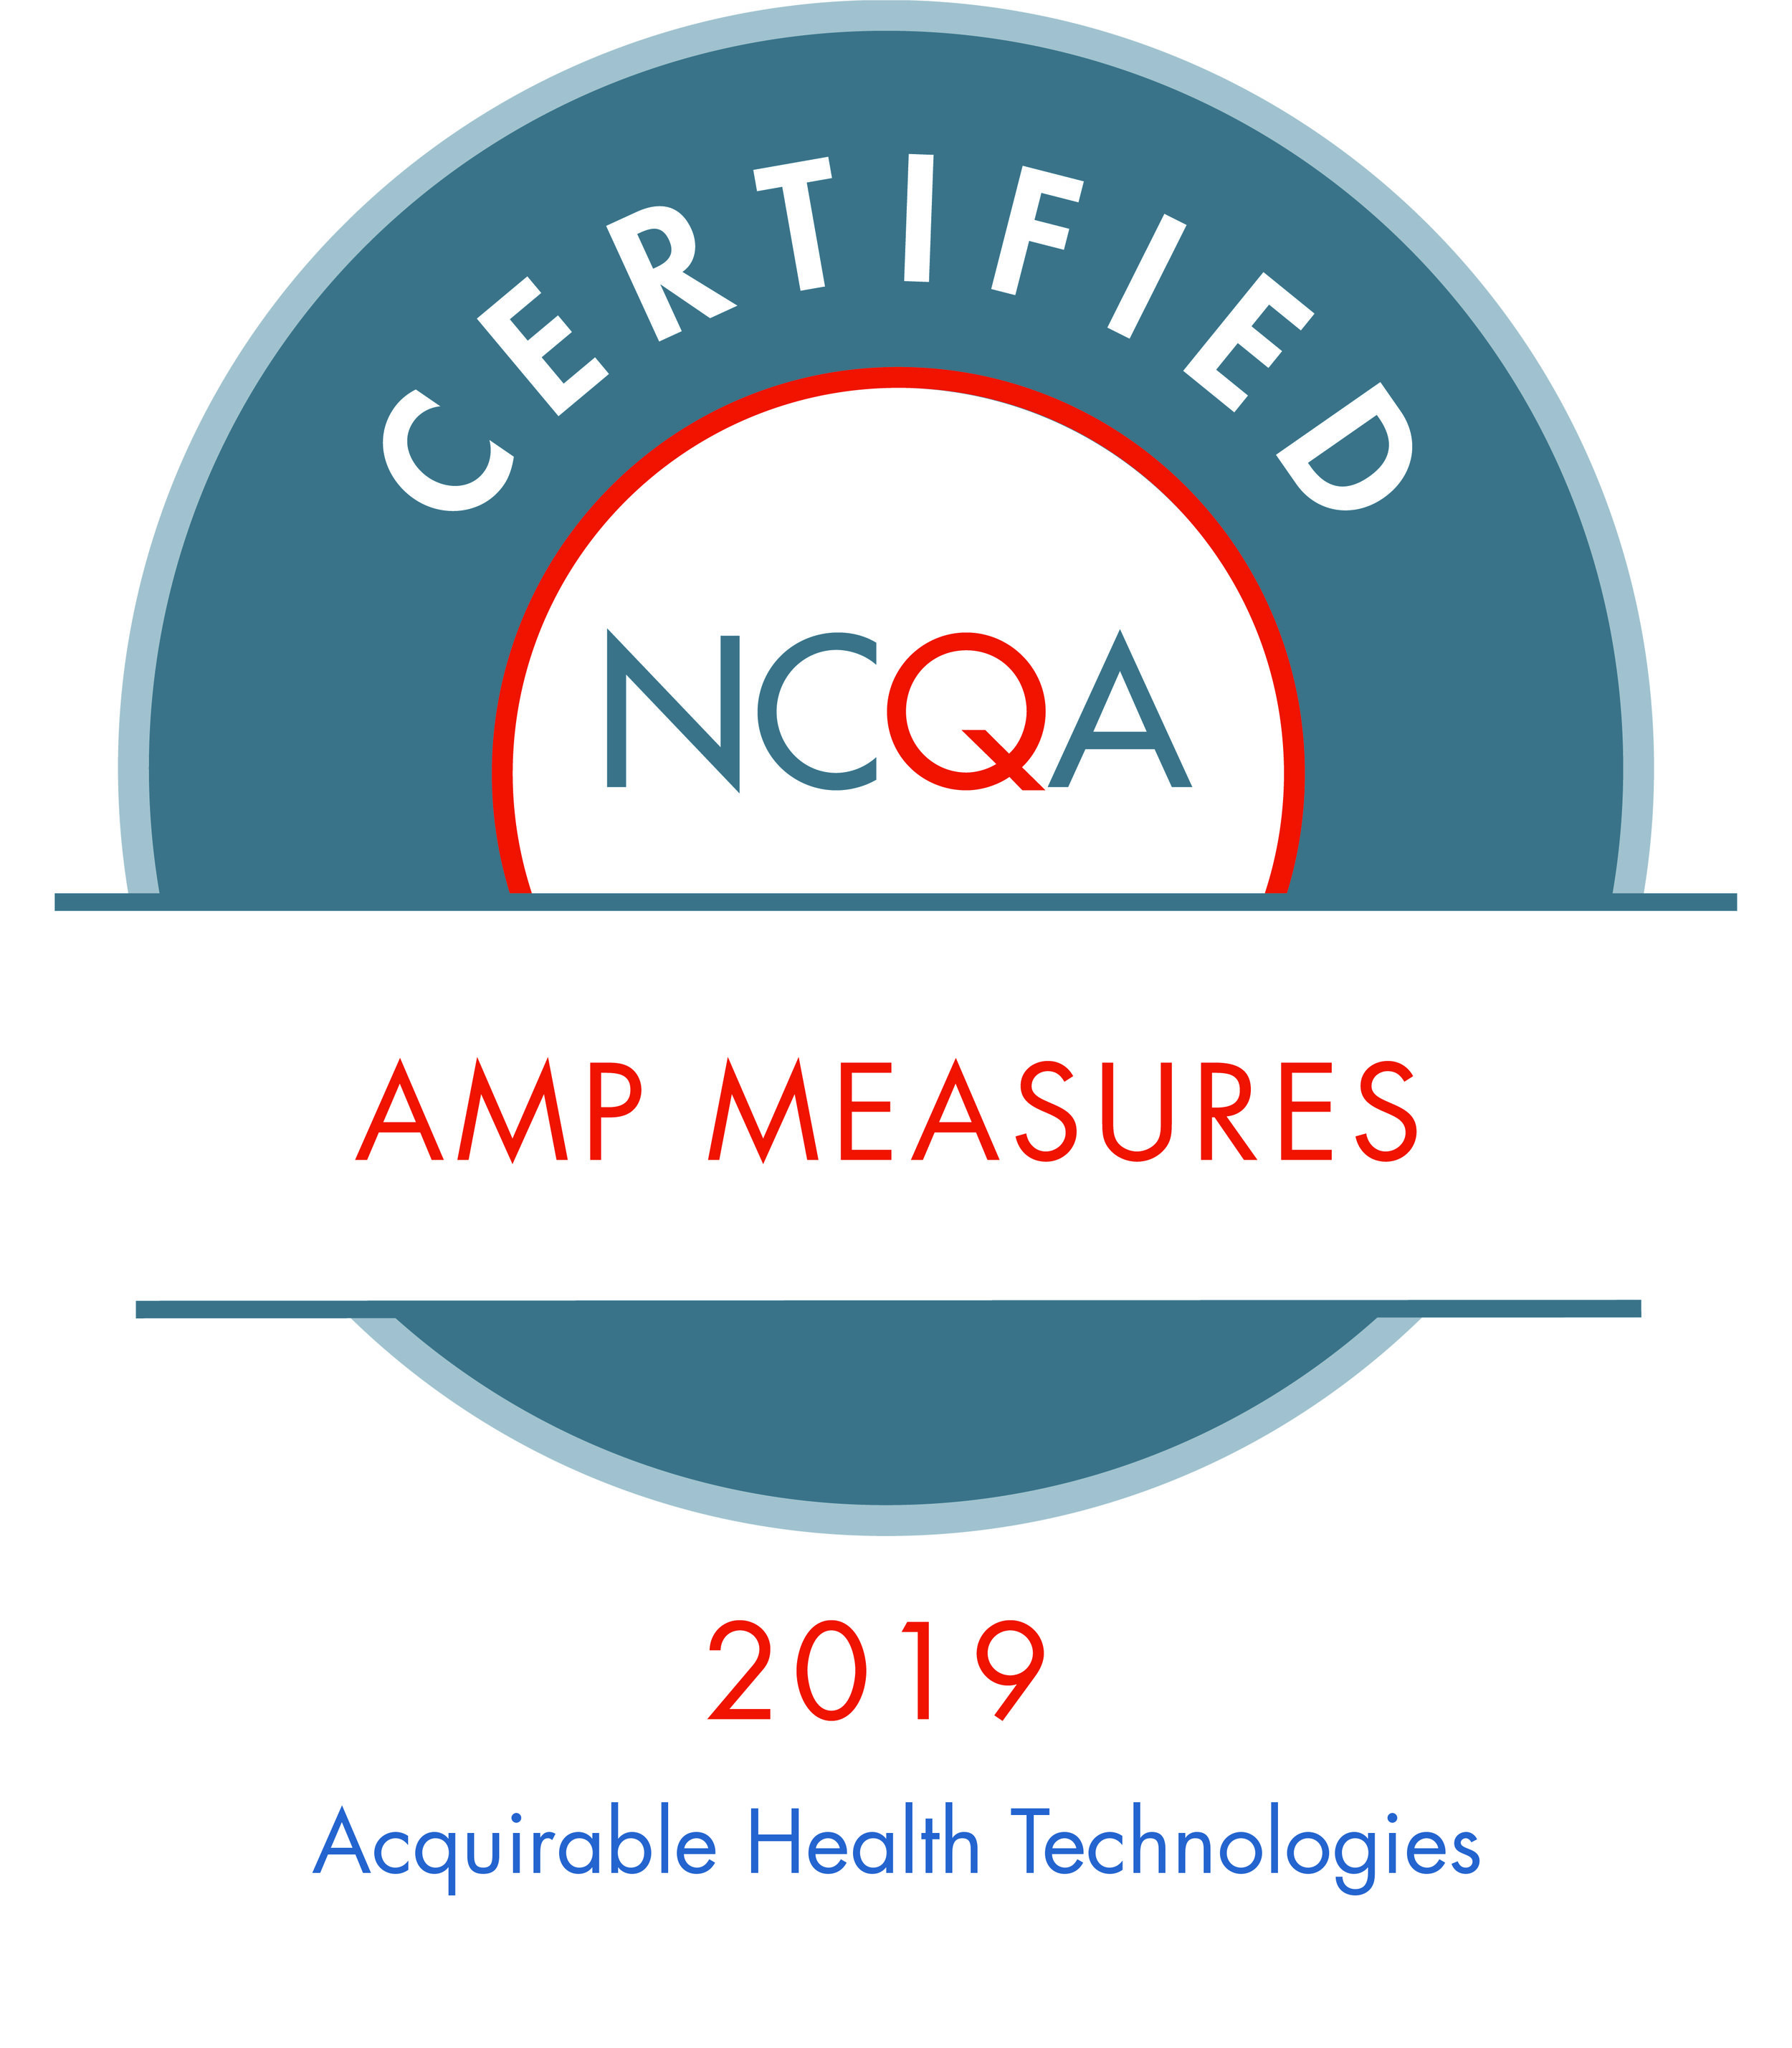 Certified AMP Measures AHT 03072019.jpg